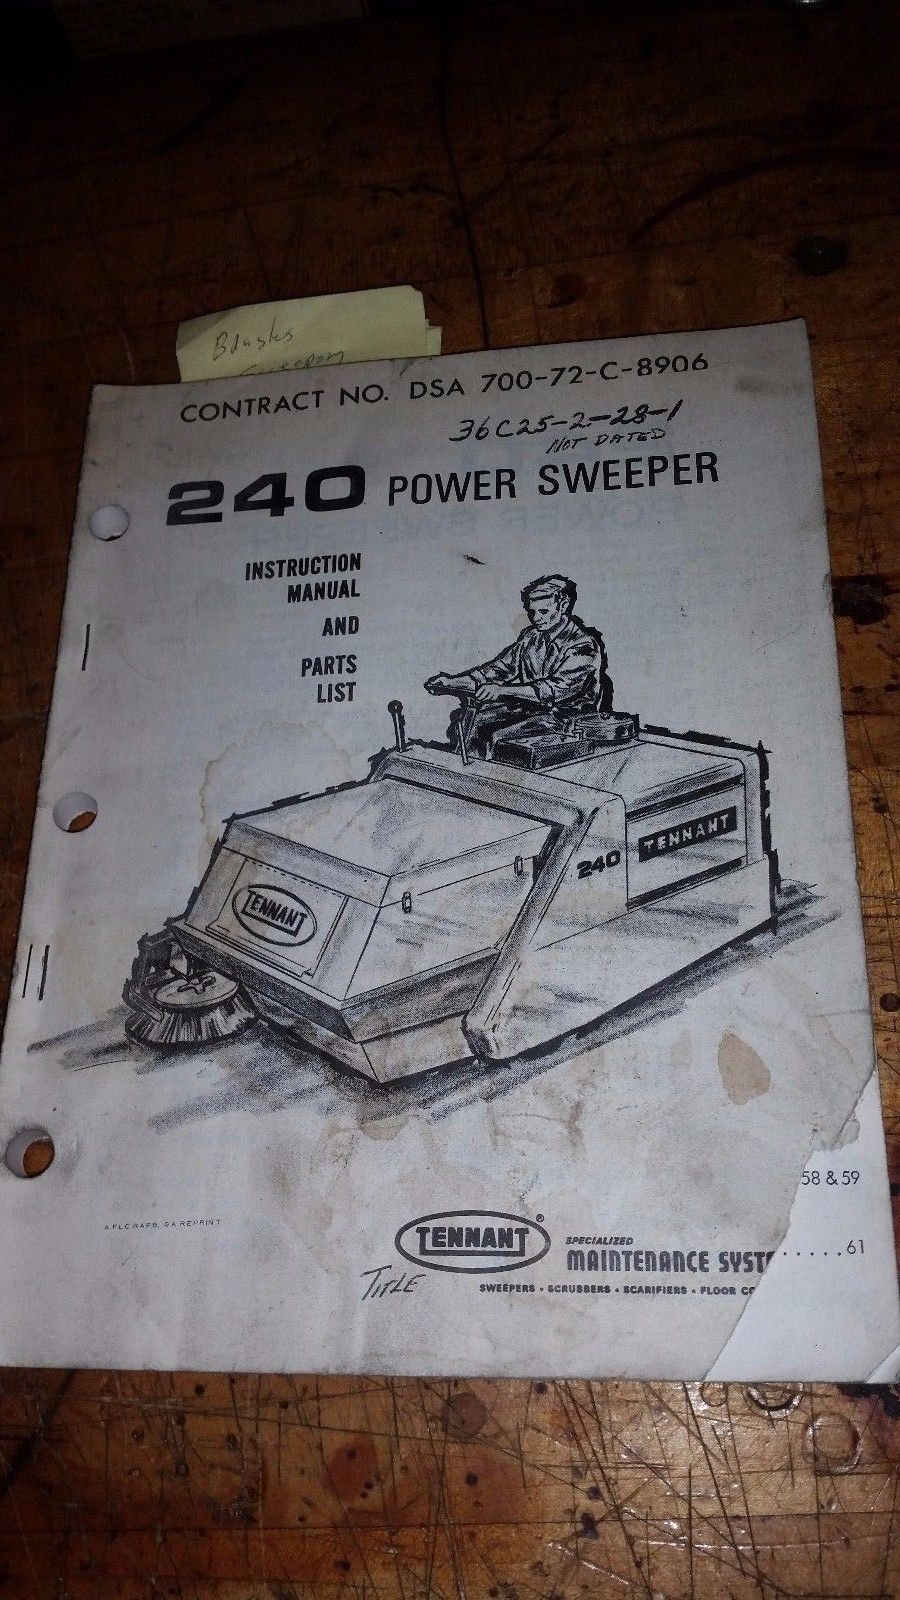 Tennant 240 power sweeper instruction manual and parts list book guide